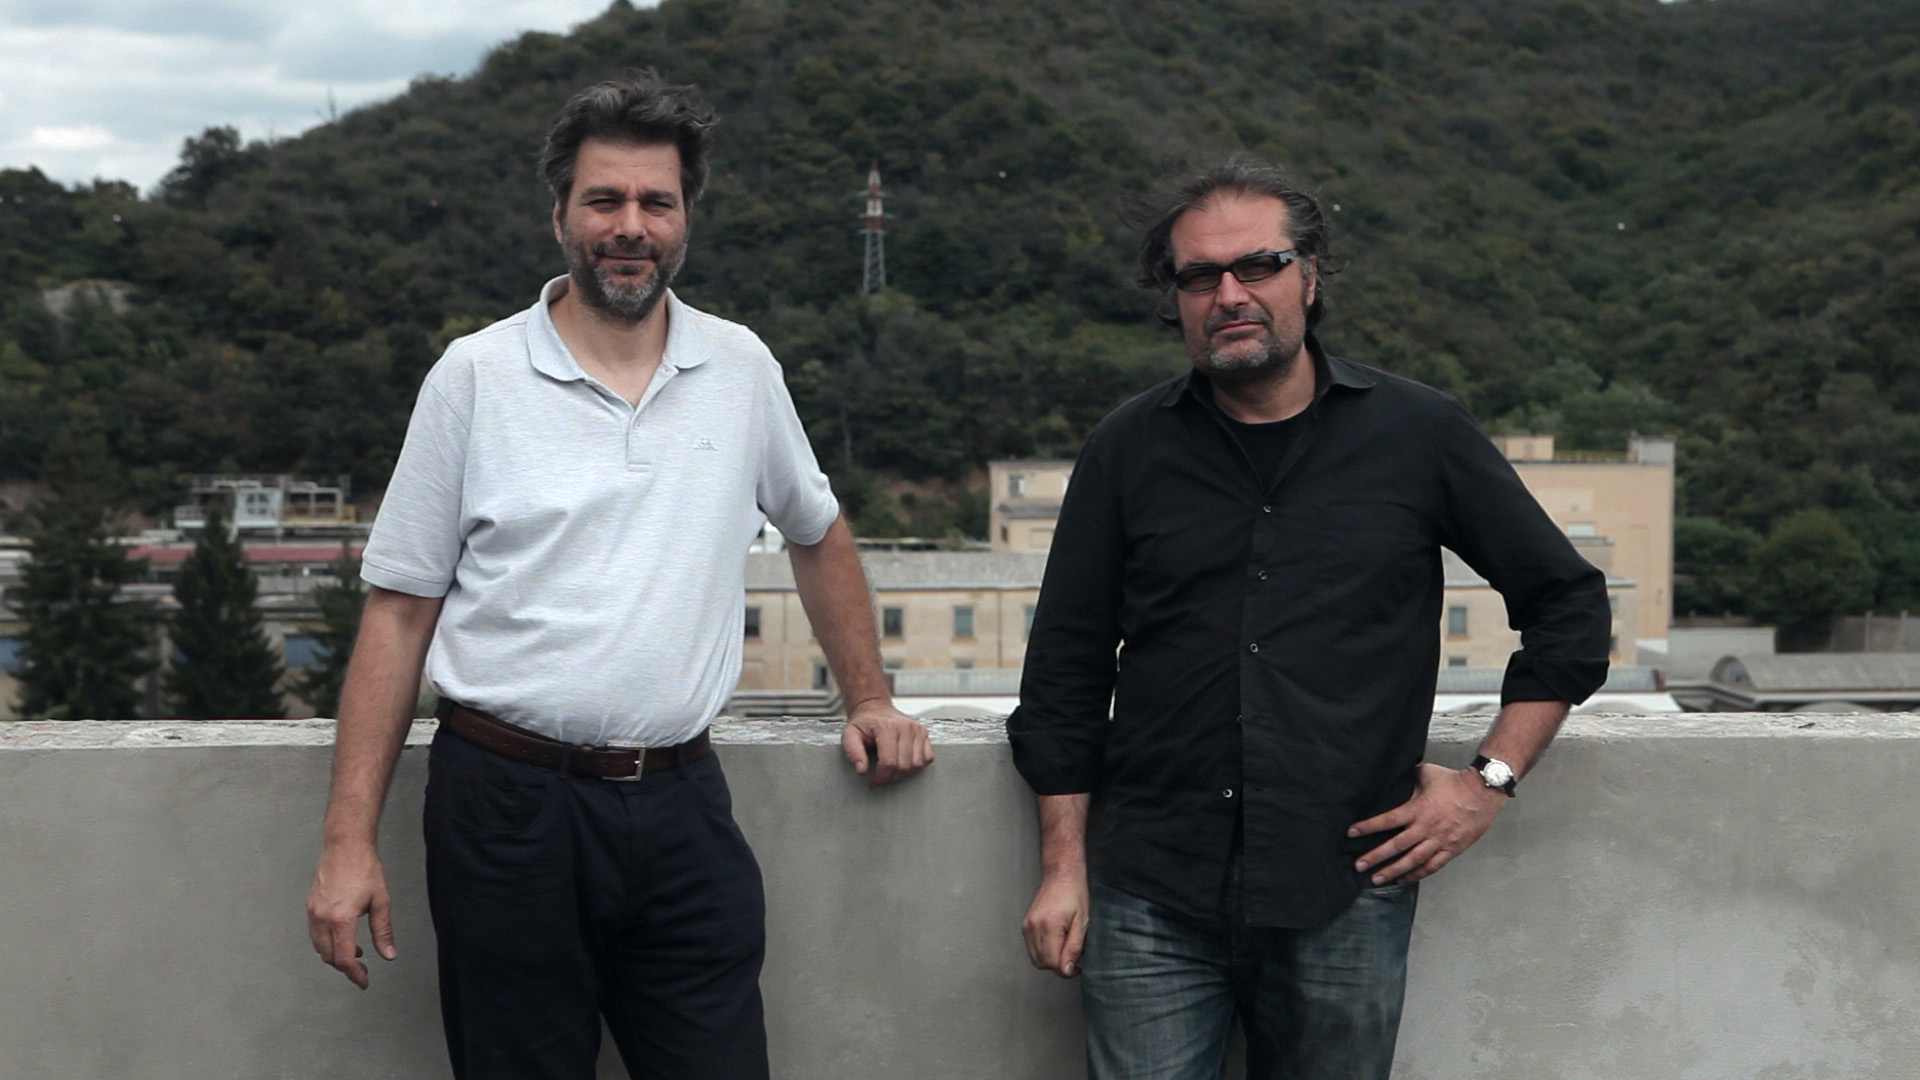 Marco Pagni and Nicola Baldini during the filming of the Kickstarter video